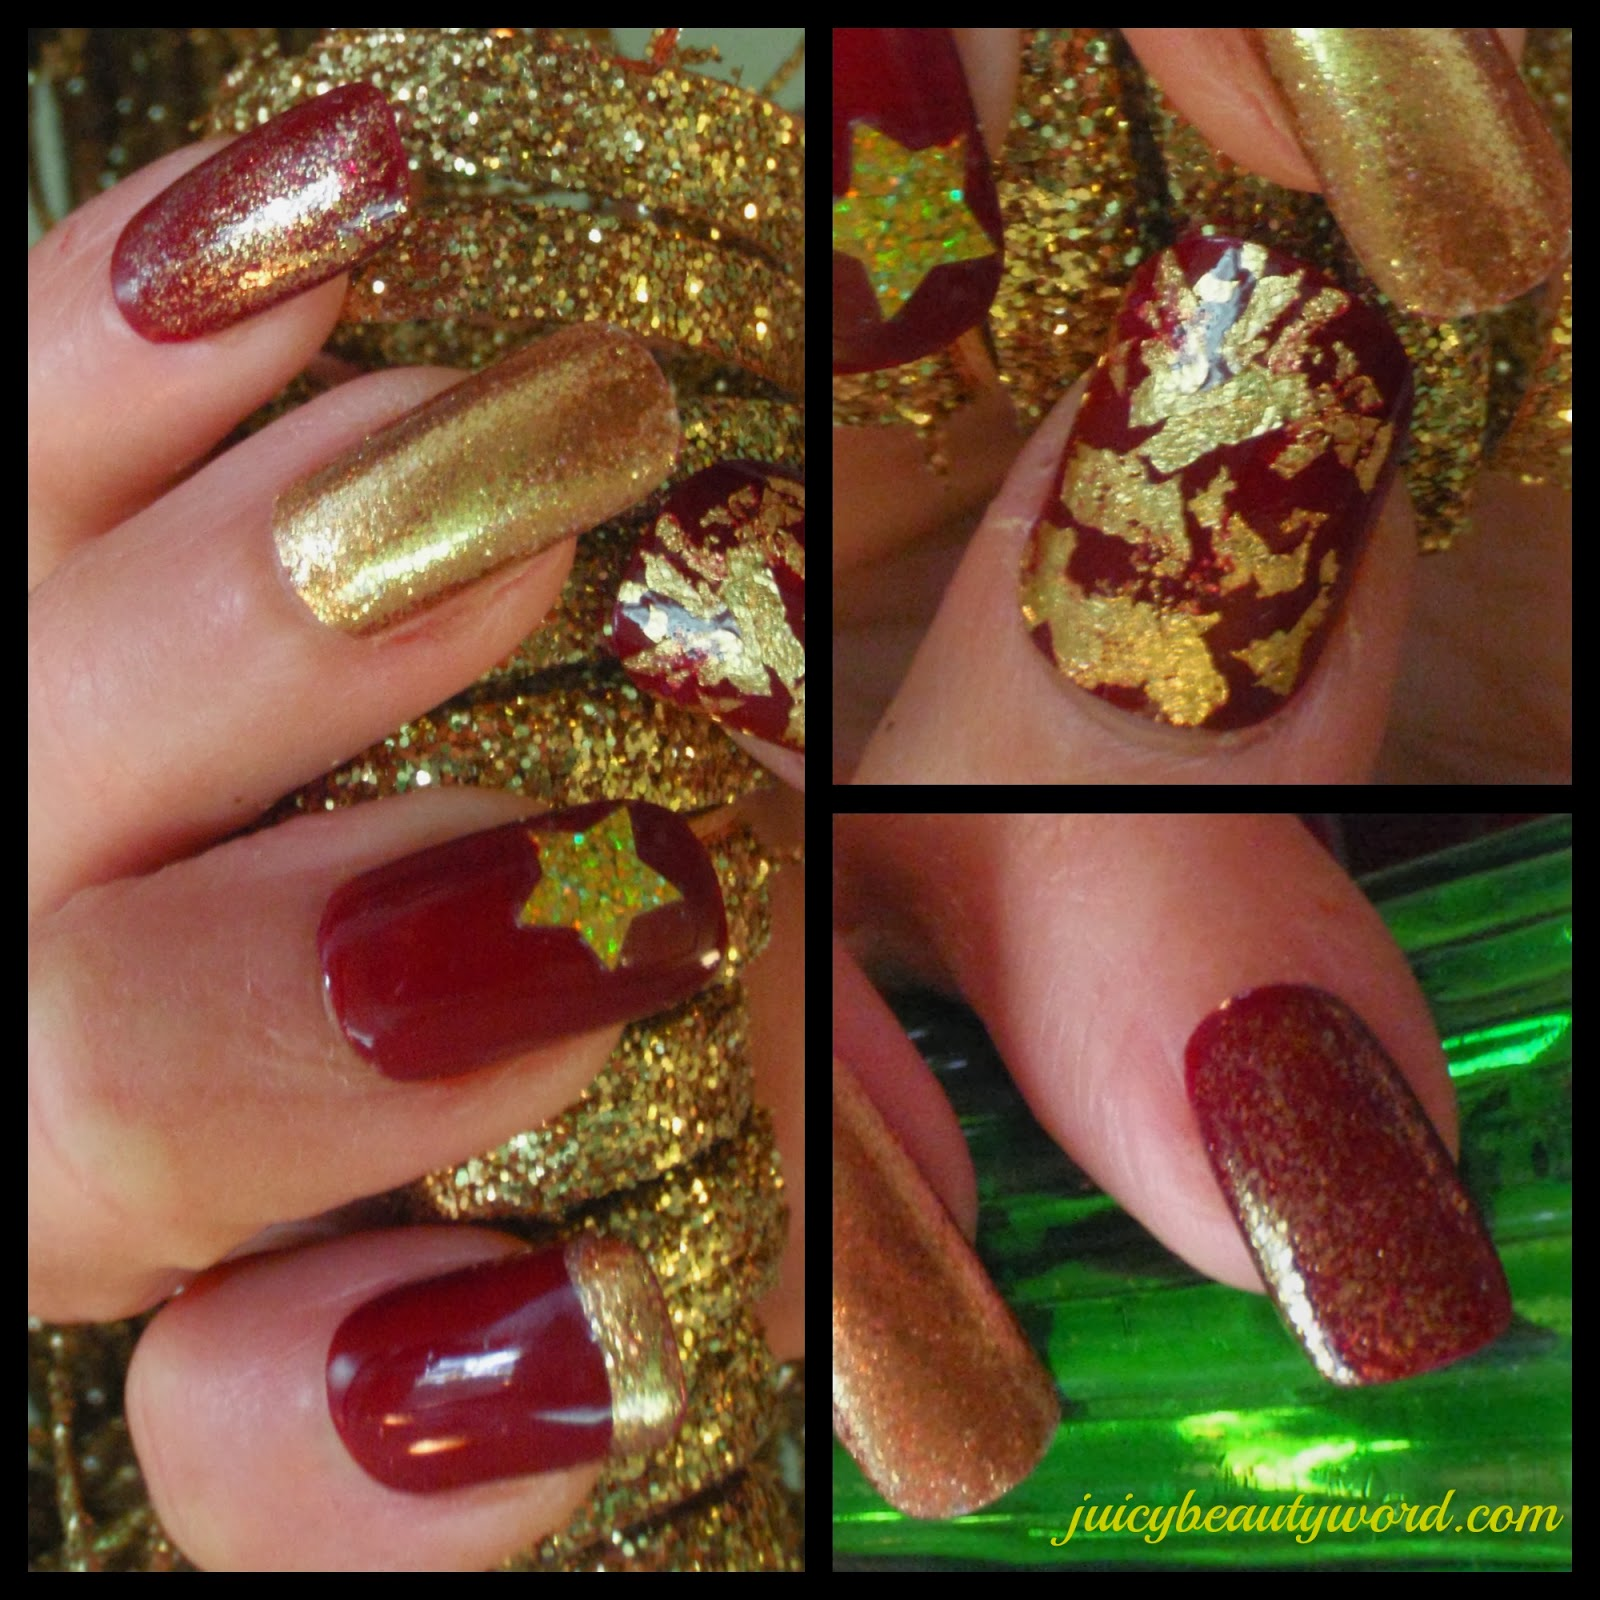 The Juicy Beauty Word Red And Gold Nail Designs